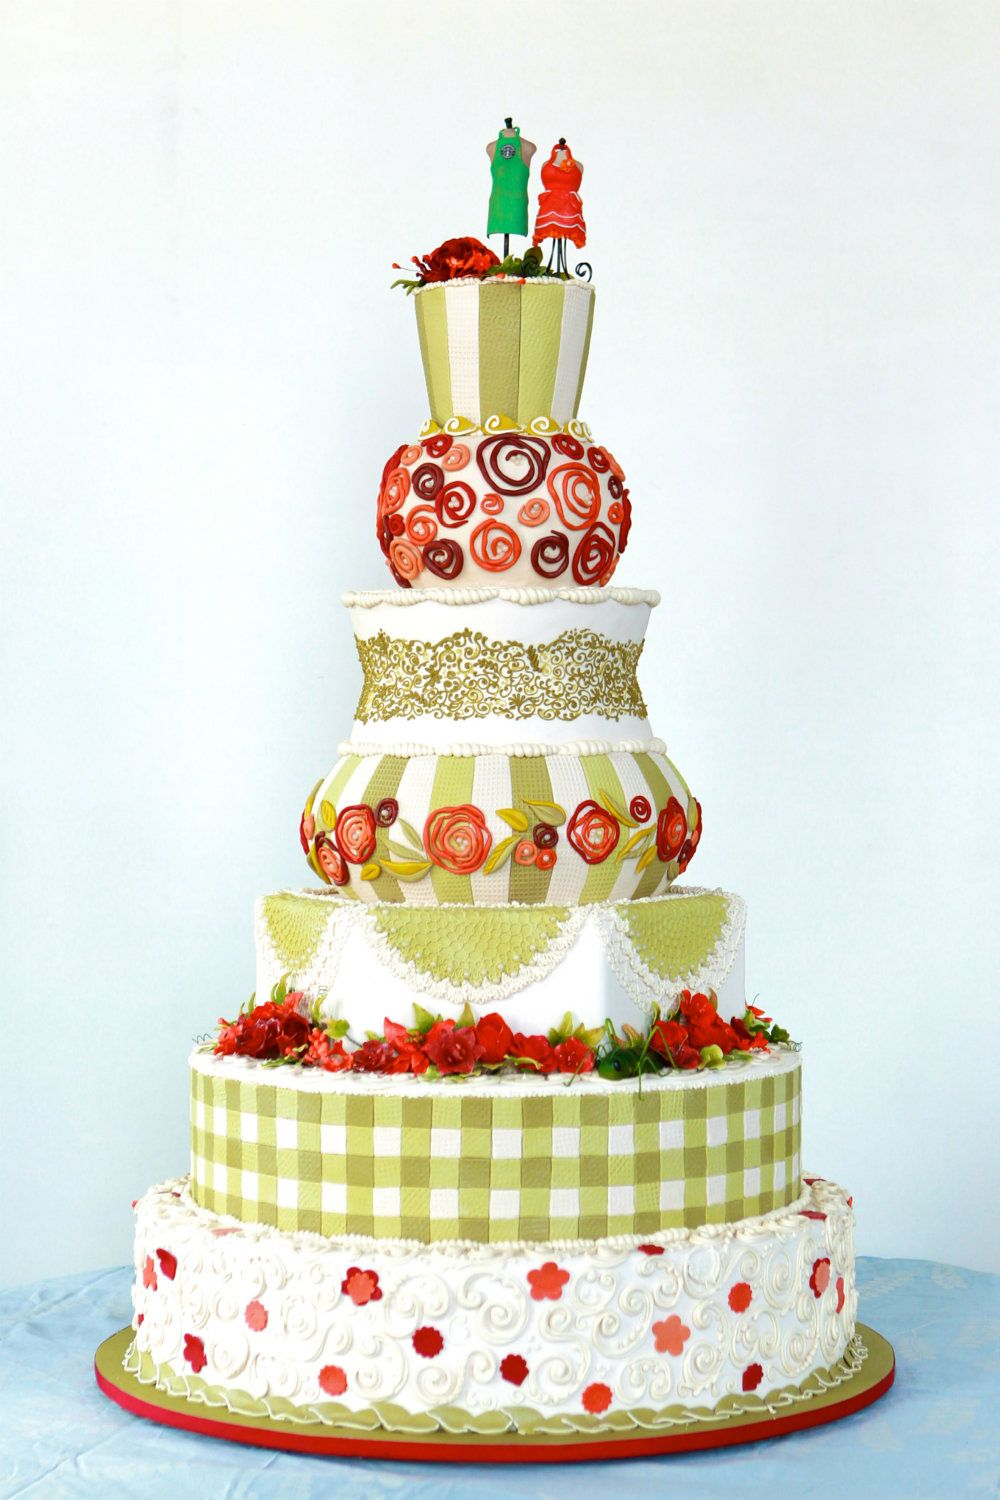 48+ Cake and art bakery trends